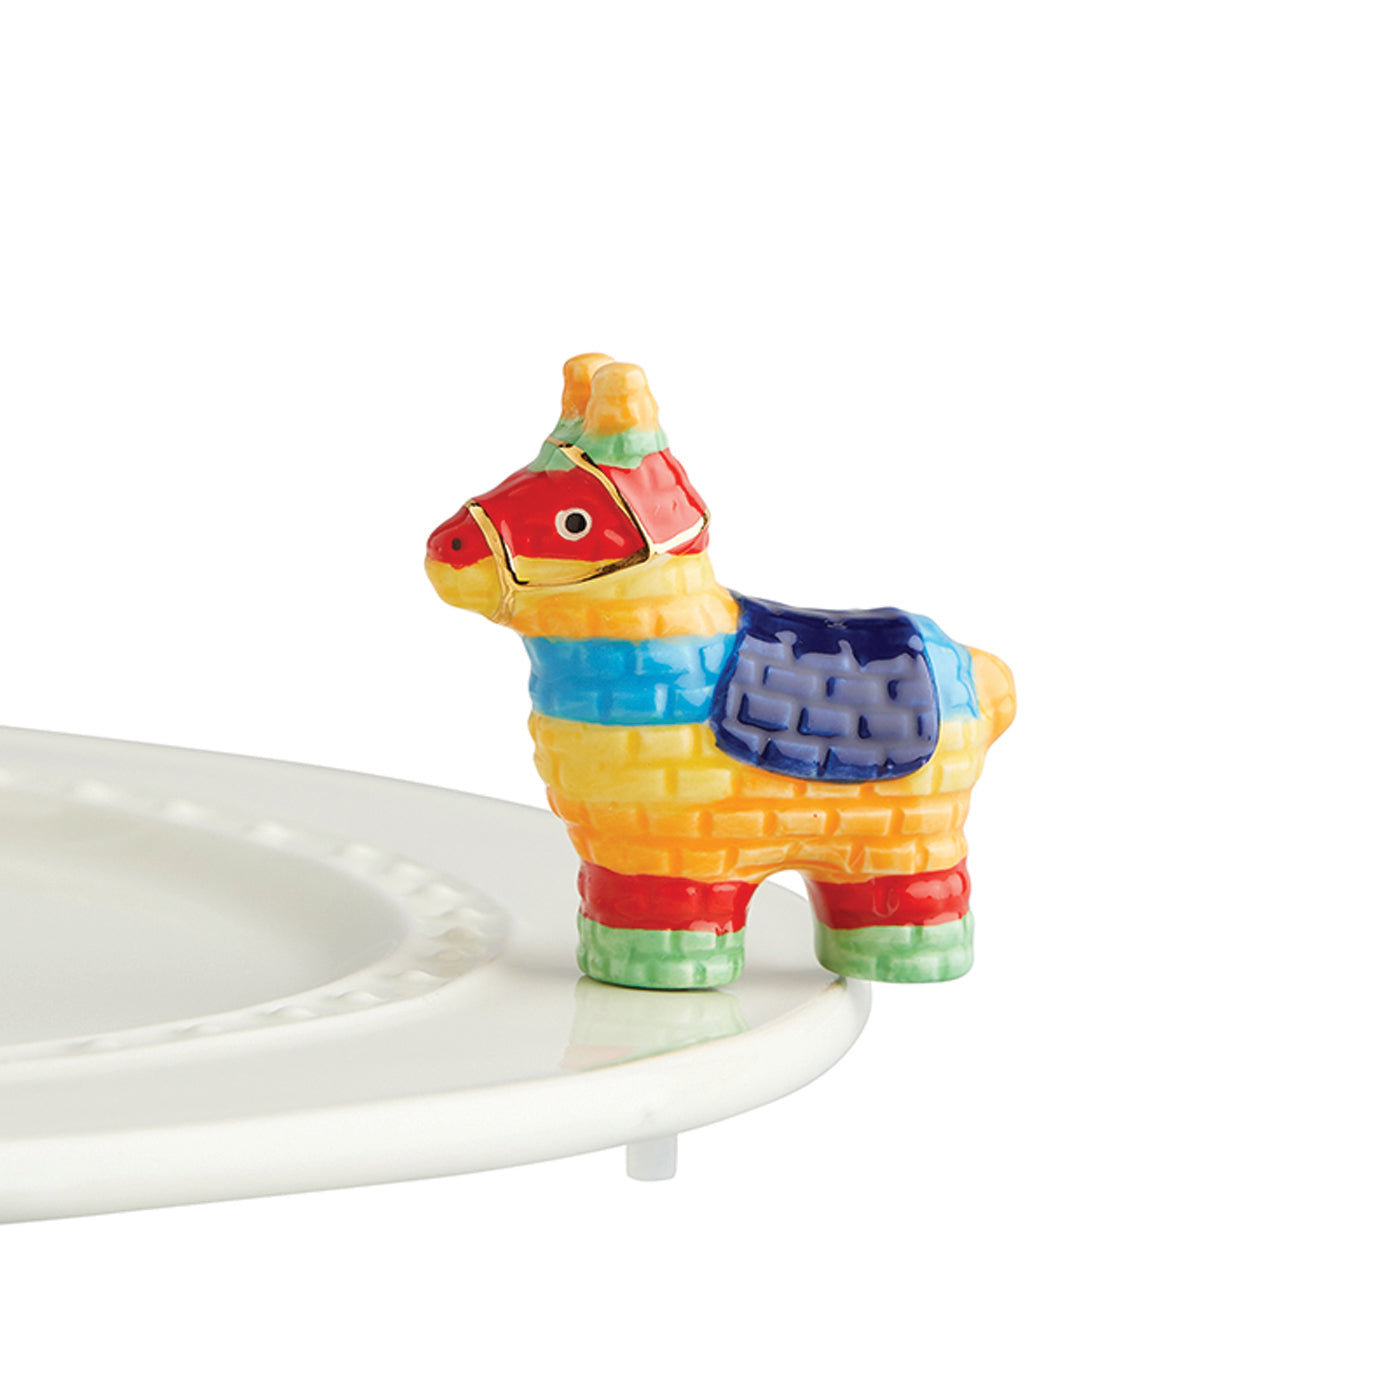 BRAND NEW! NORA FLEMING PARTY ANIMAL PINATA MINI